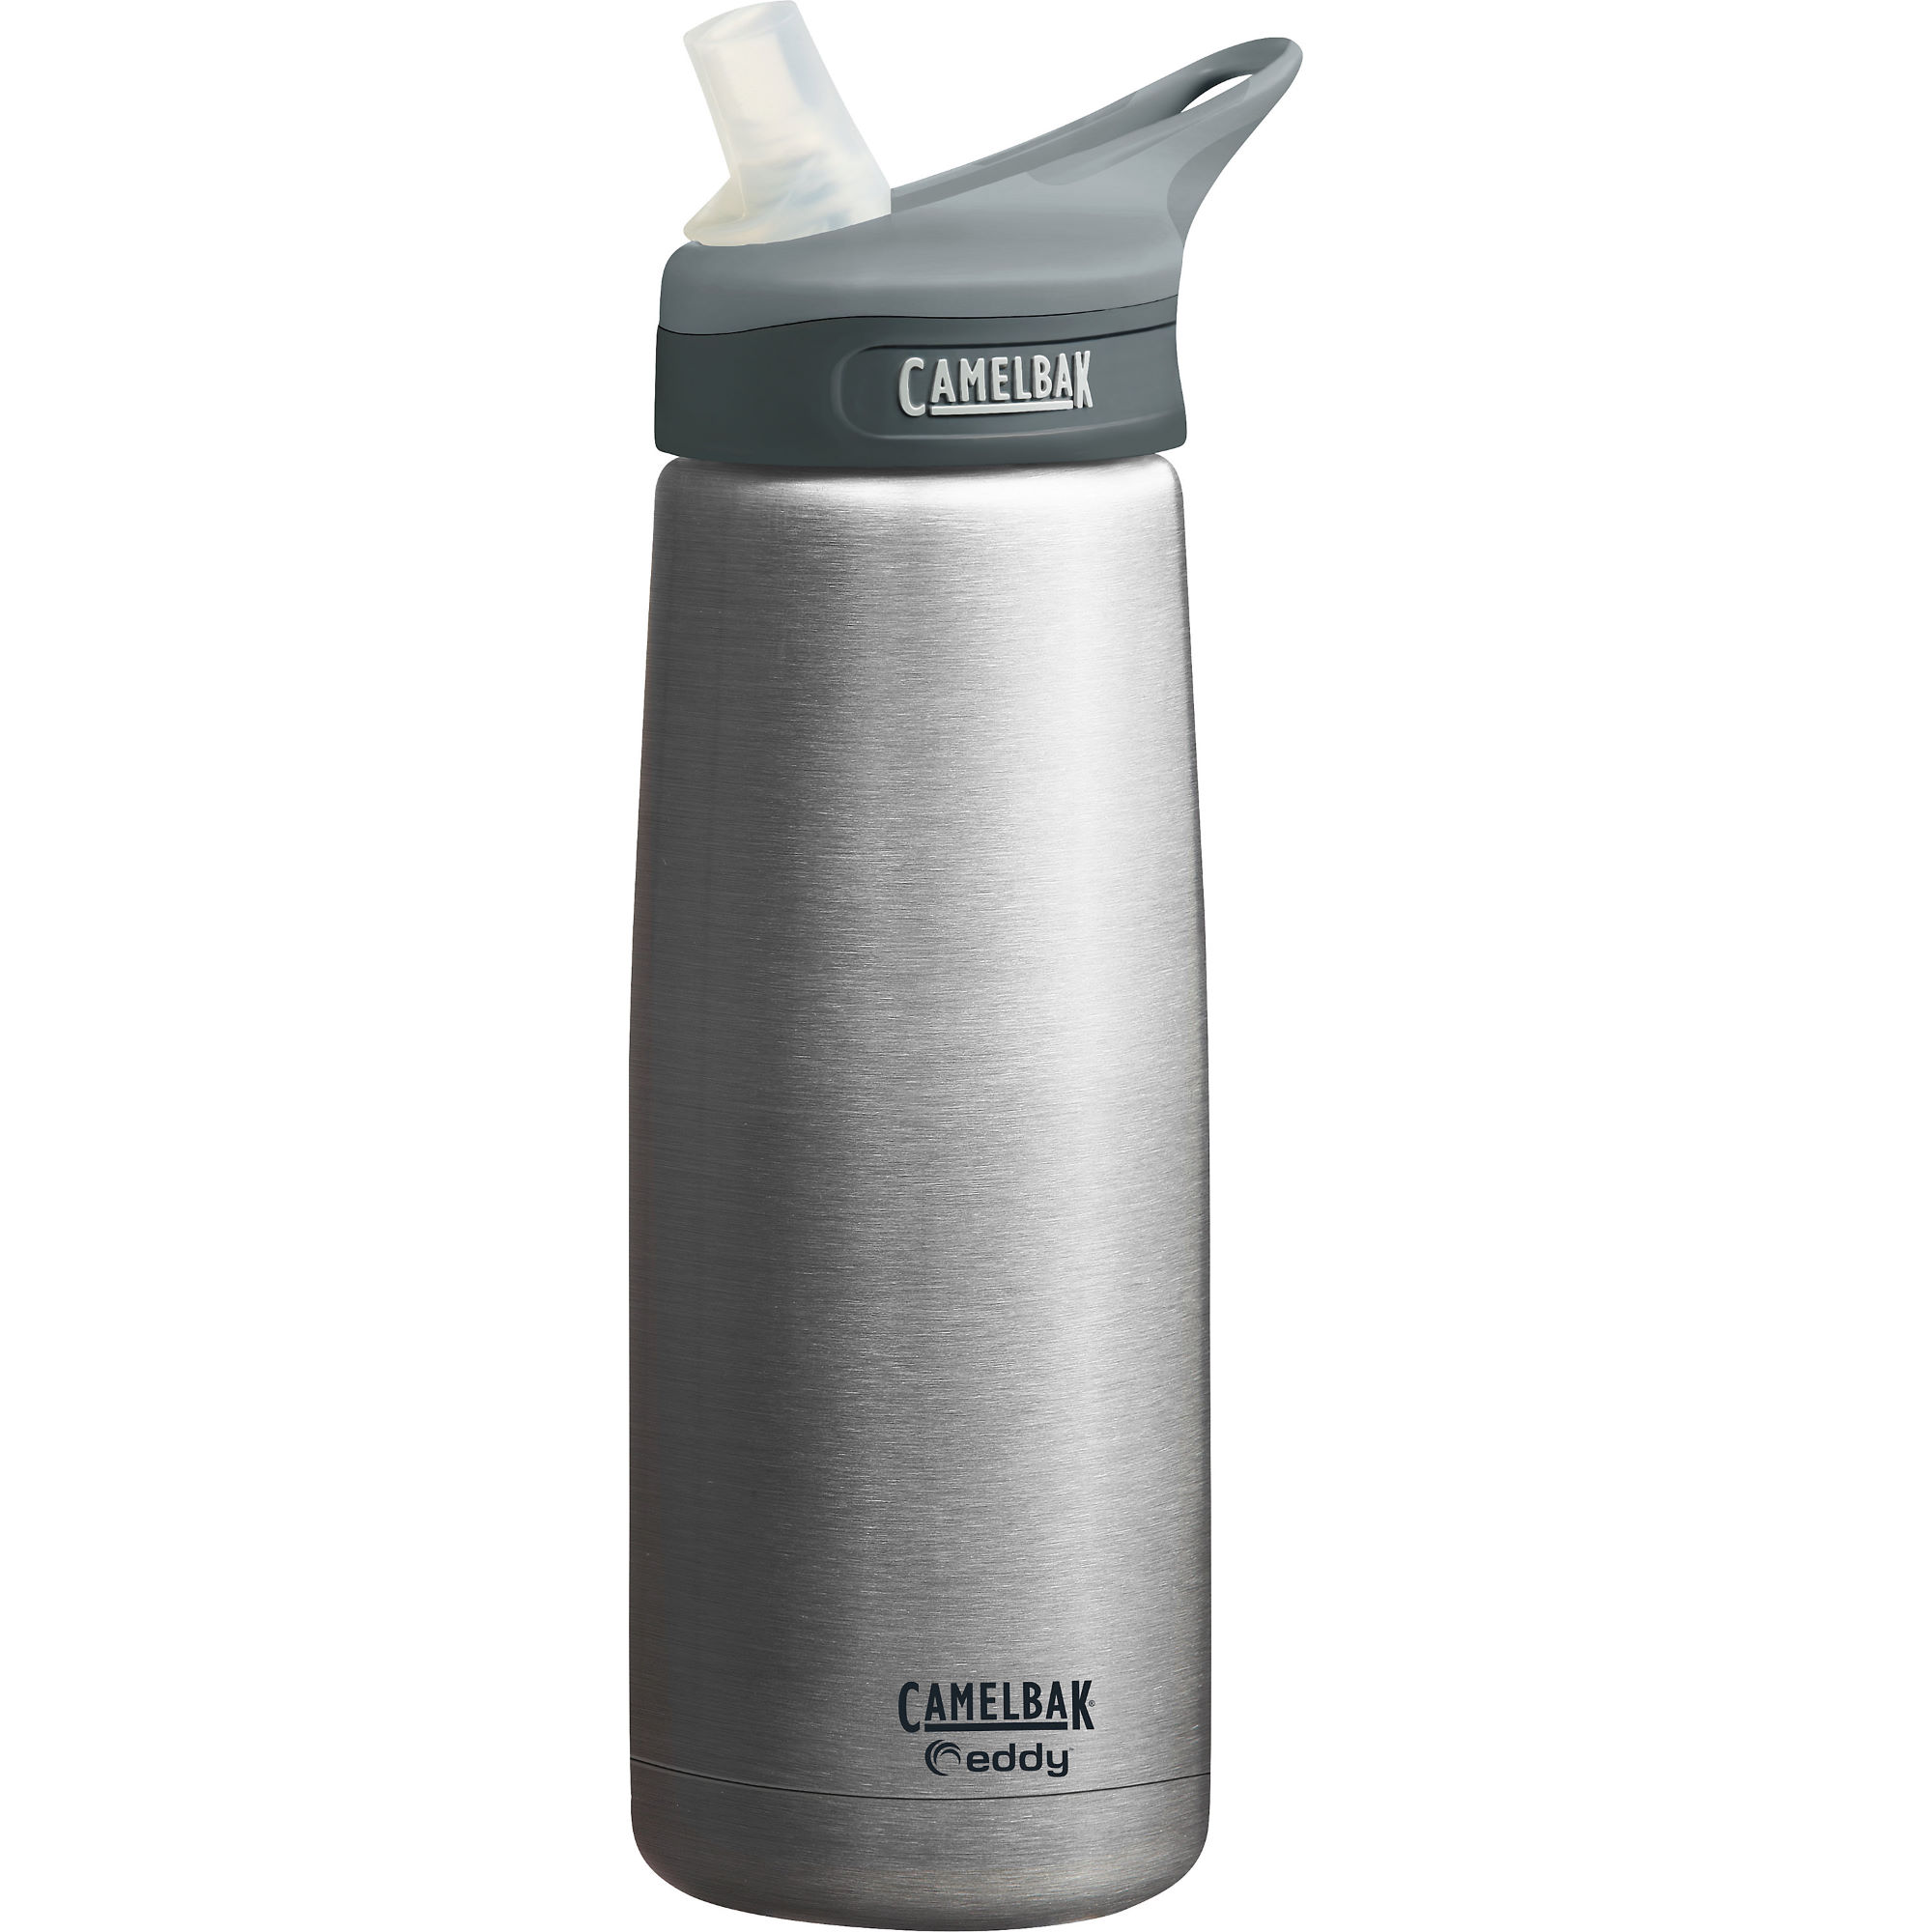 Wiggle Camelbak Eddy Stainless Steel Insulated Bottle